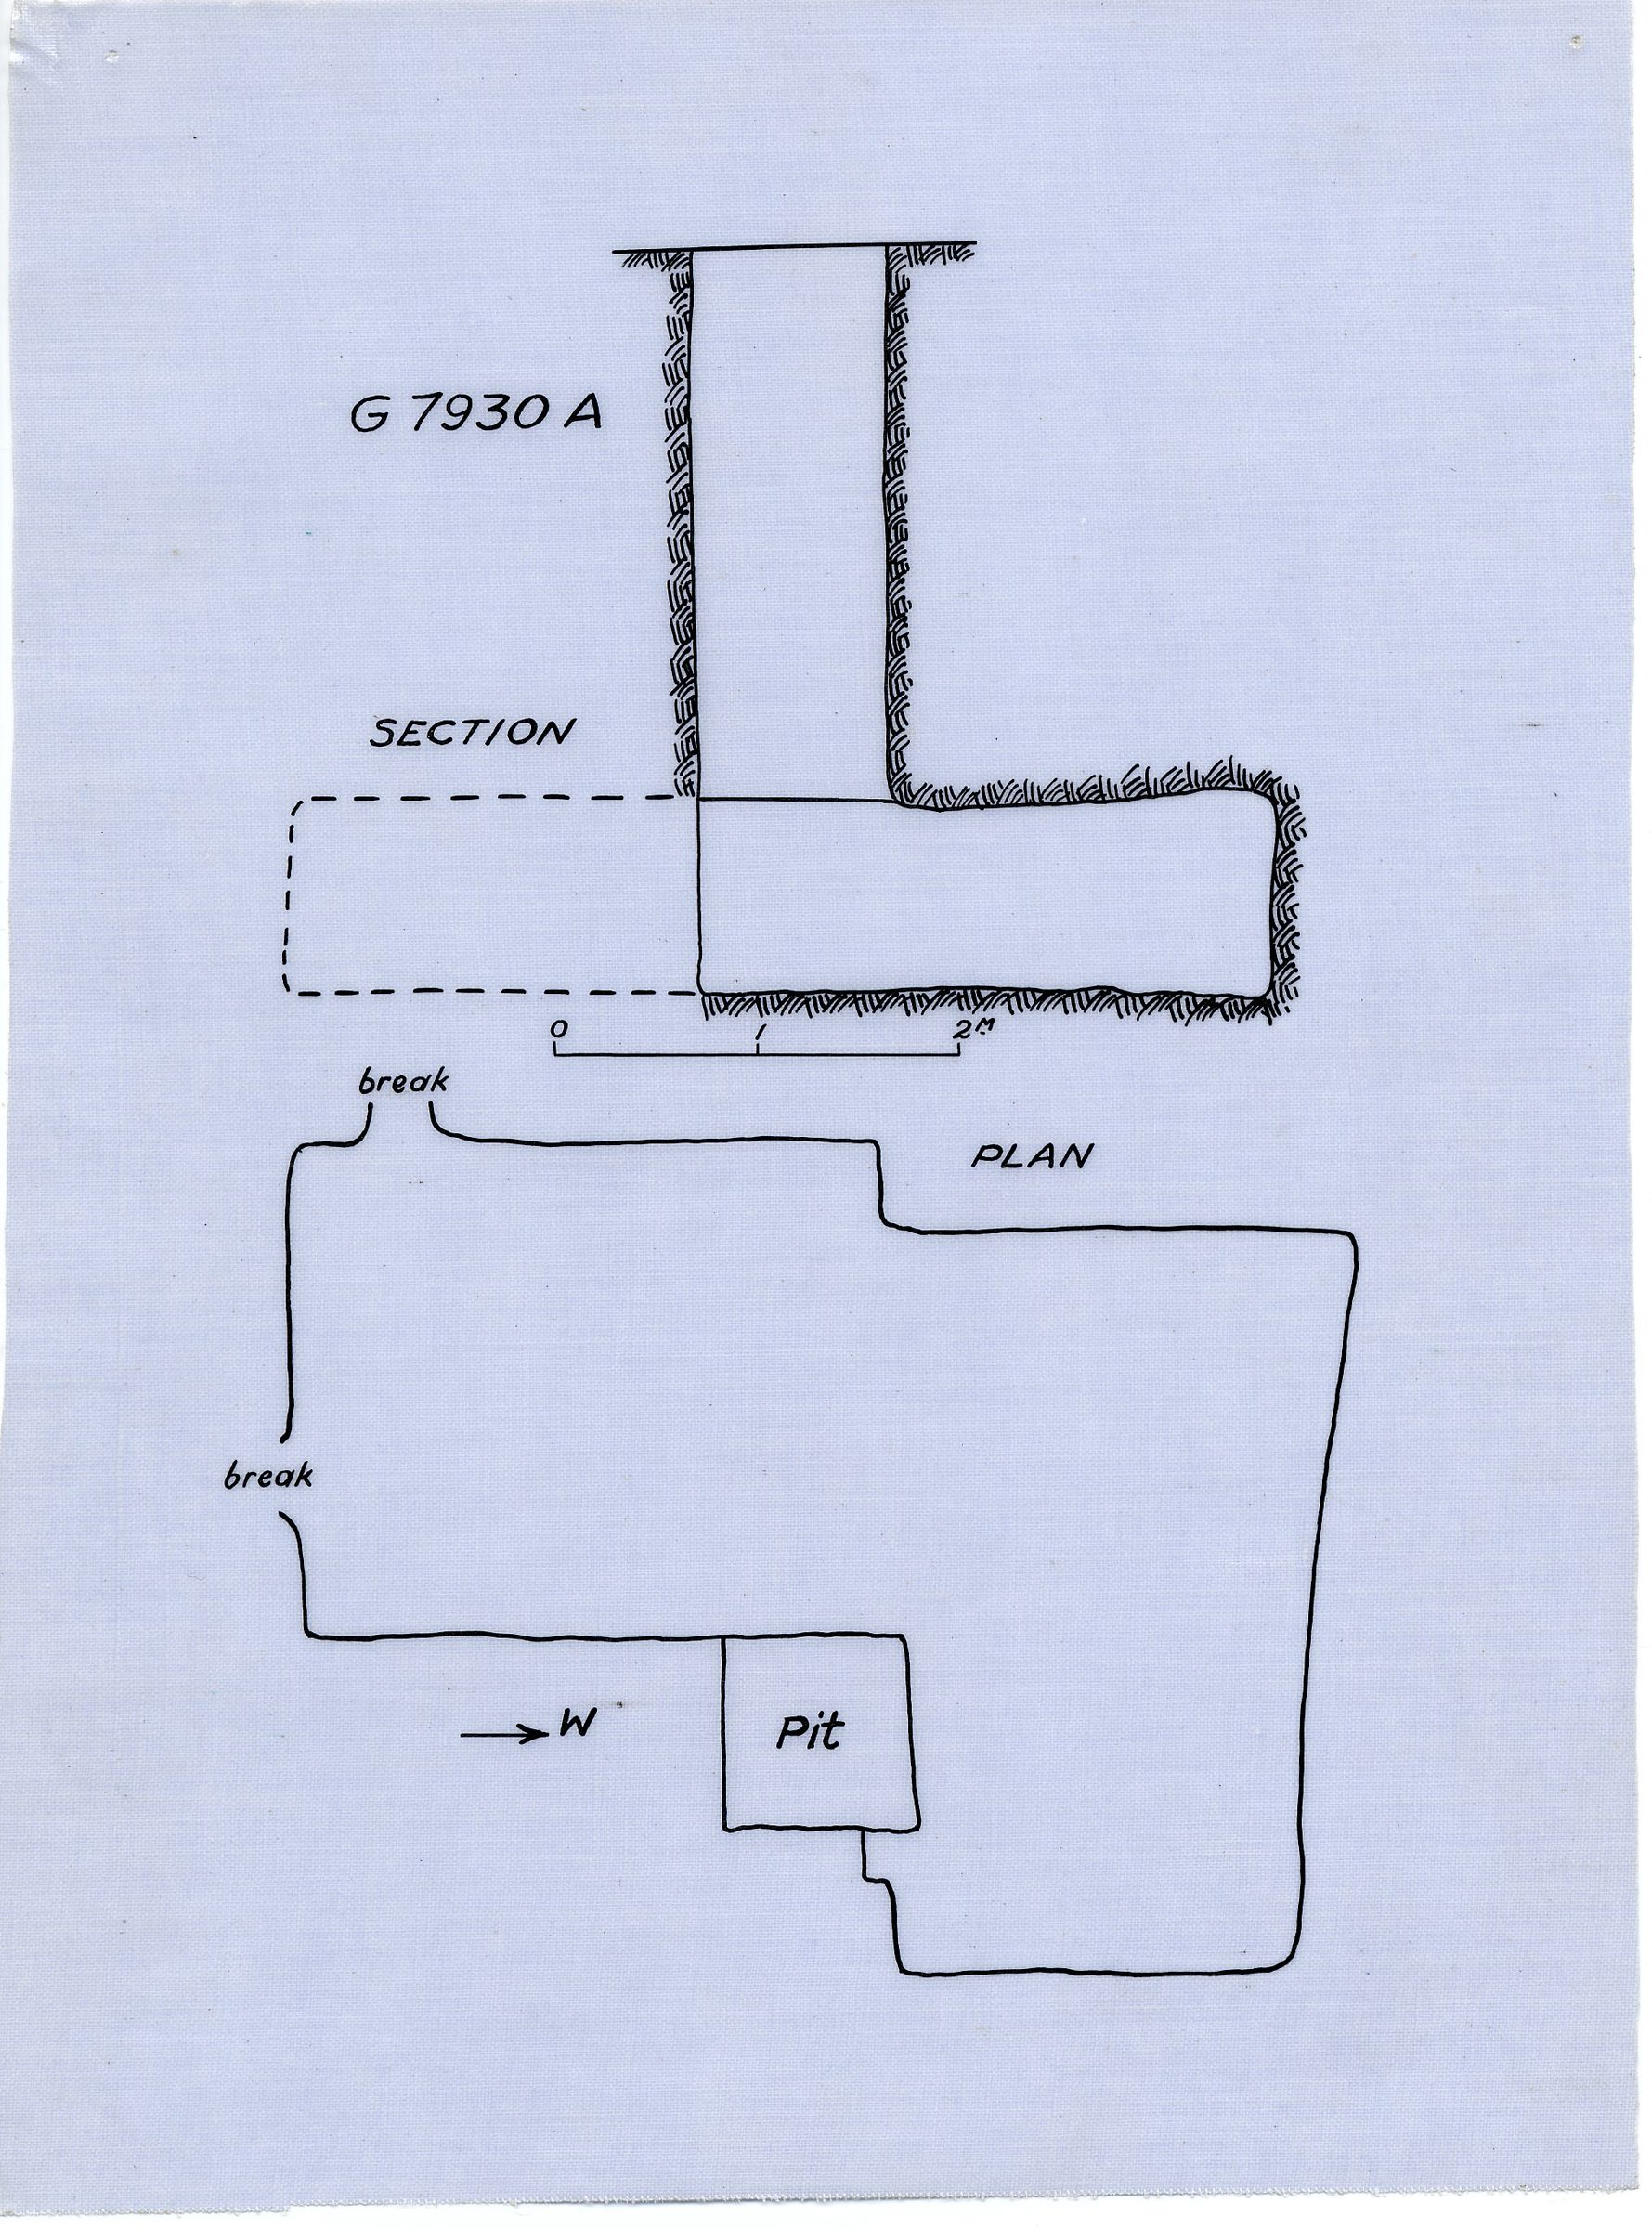 Maps and plans: G 7930, Shaft A